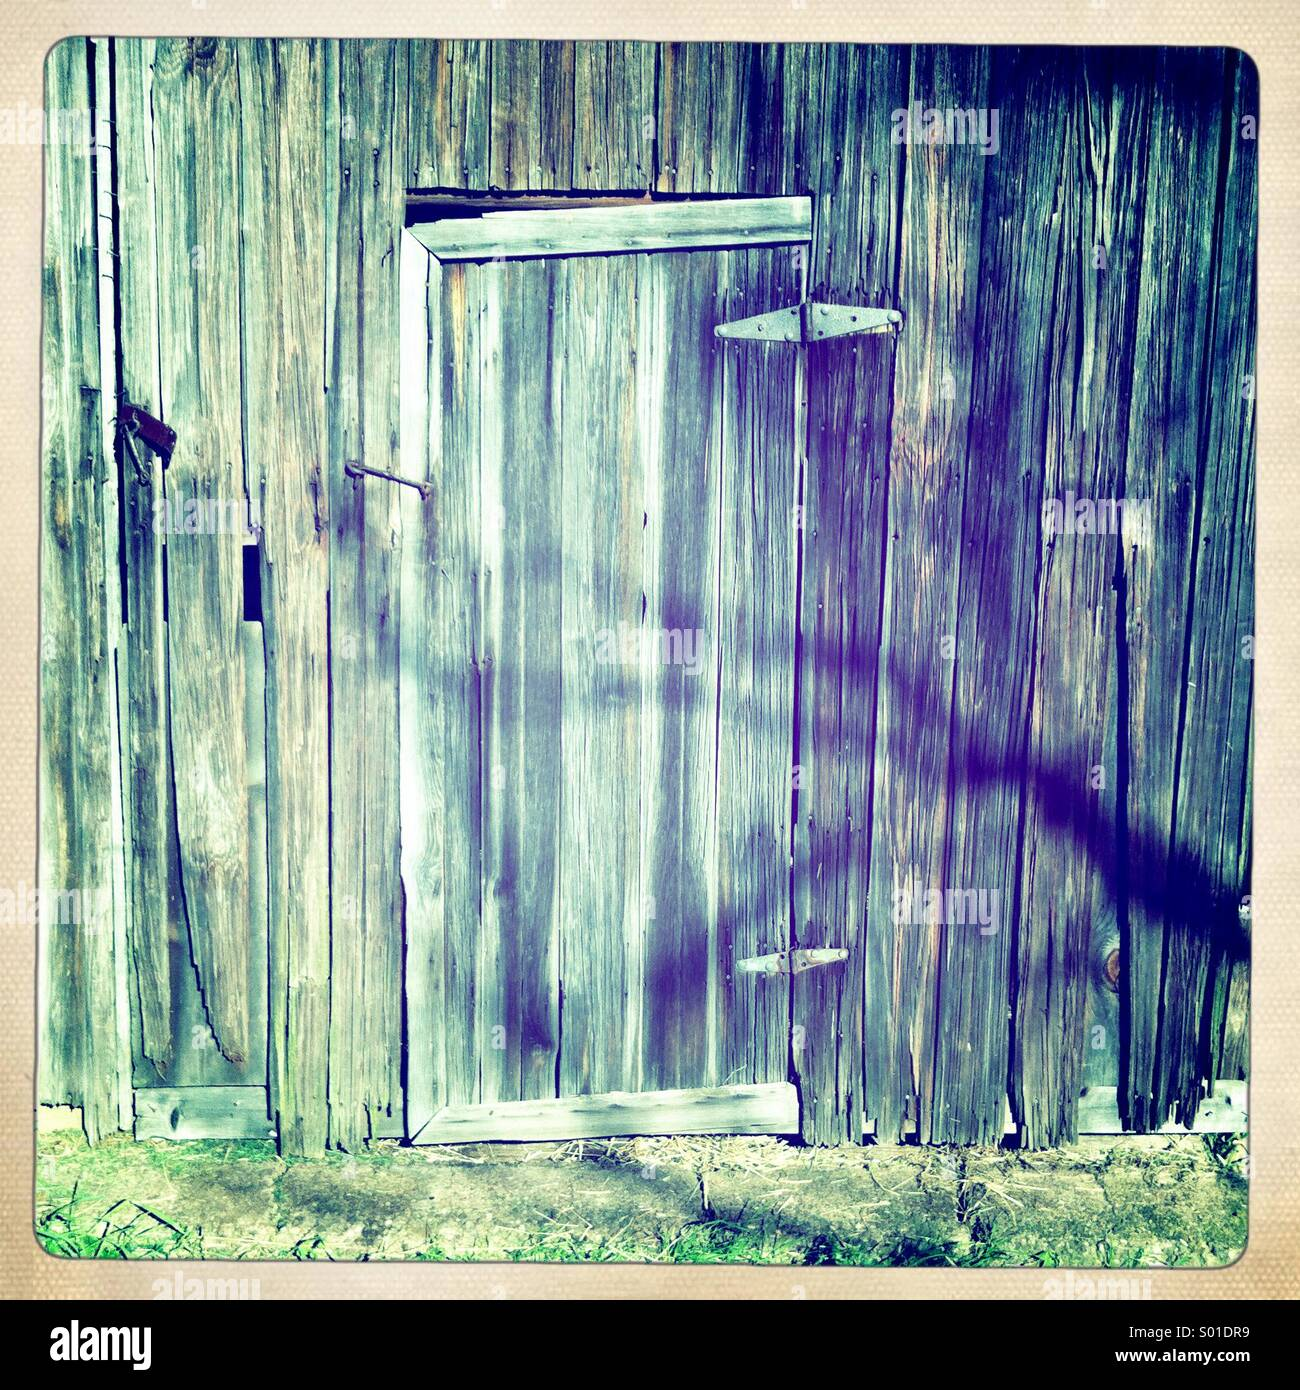 Weathered barn door. - Stock Image